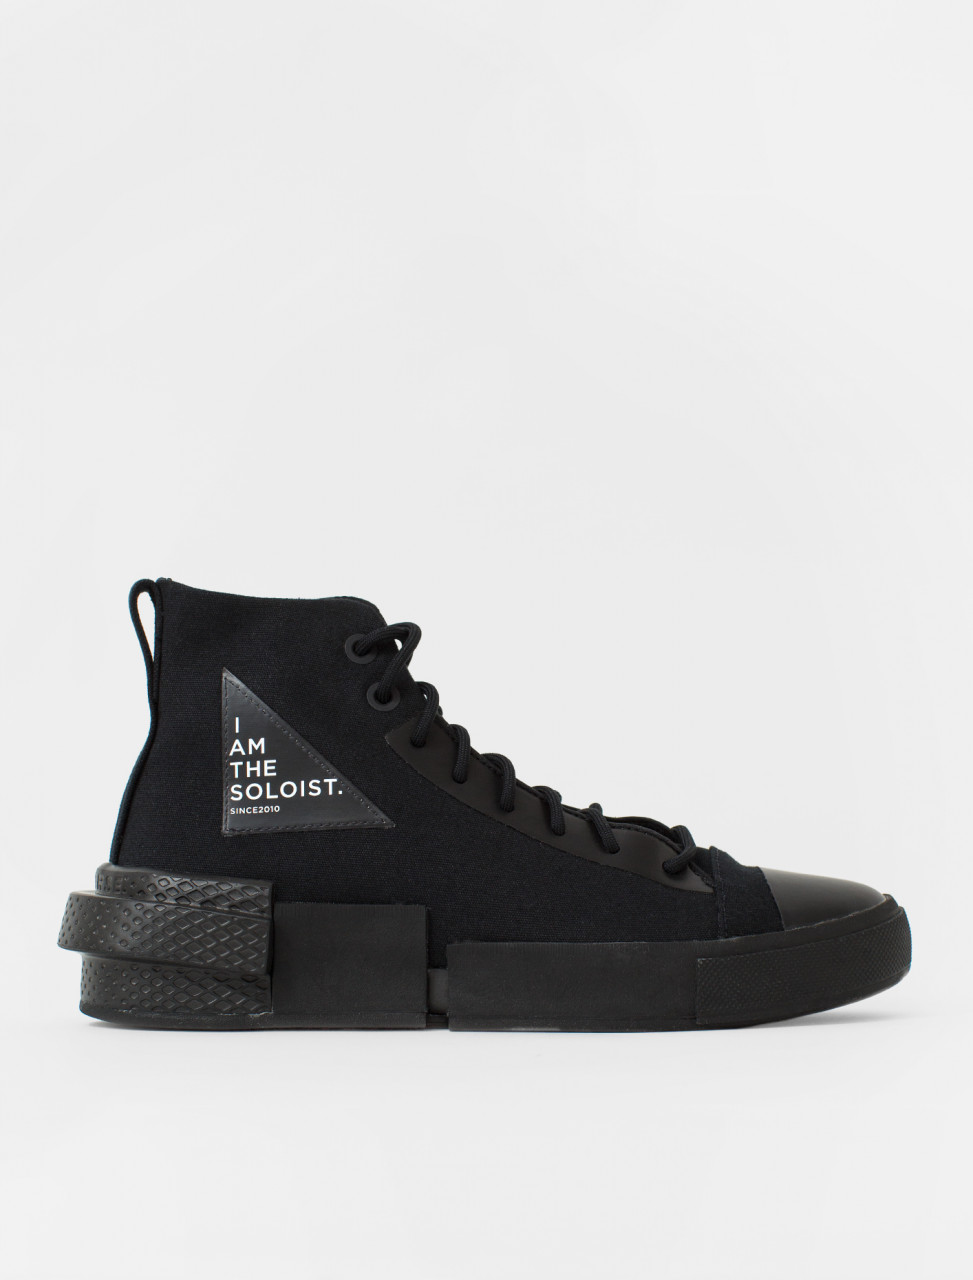 x The Soloist All Star Disrupt CX High Sneaker